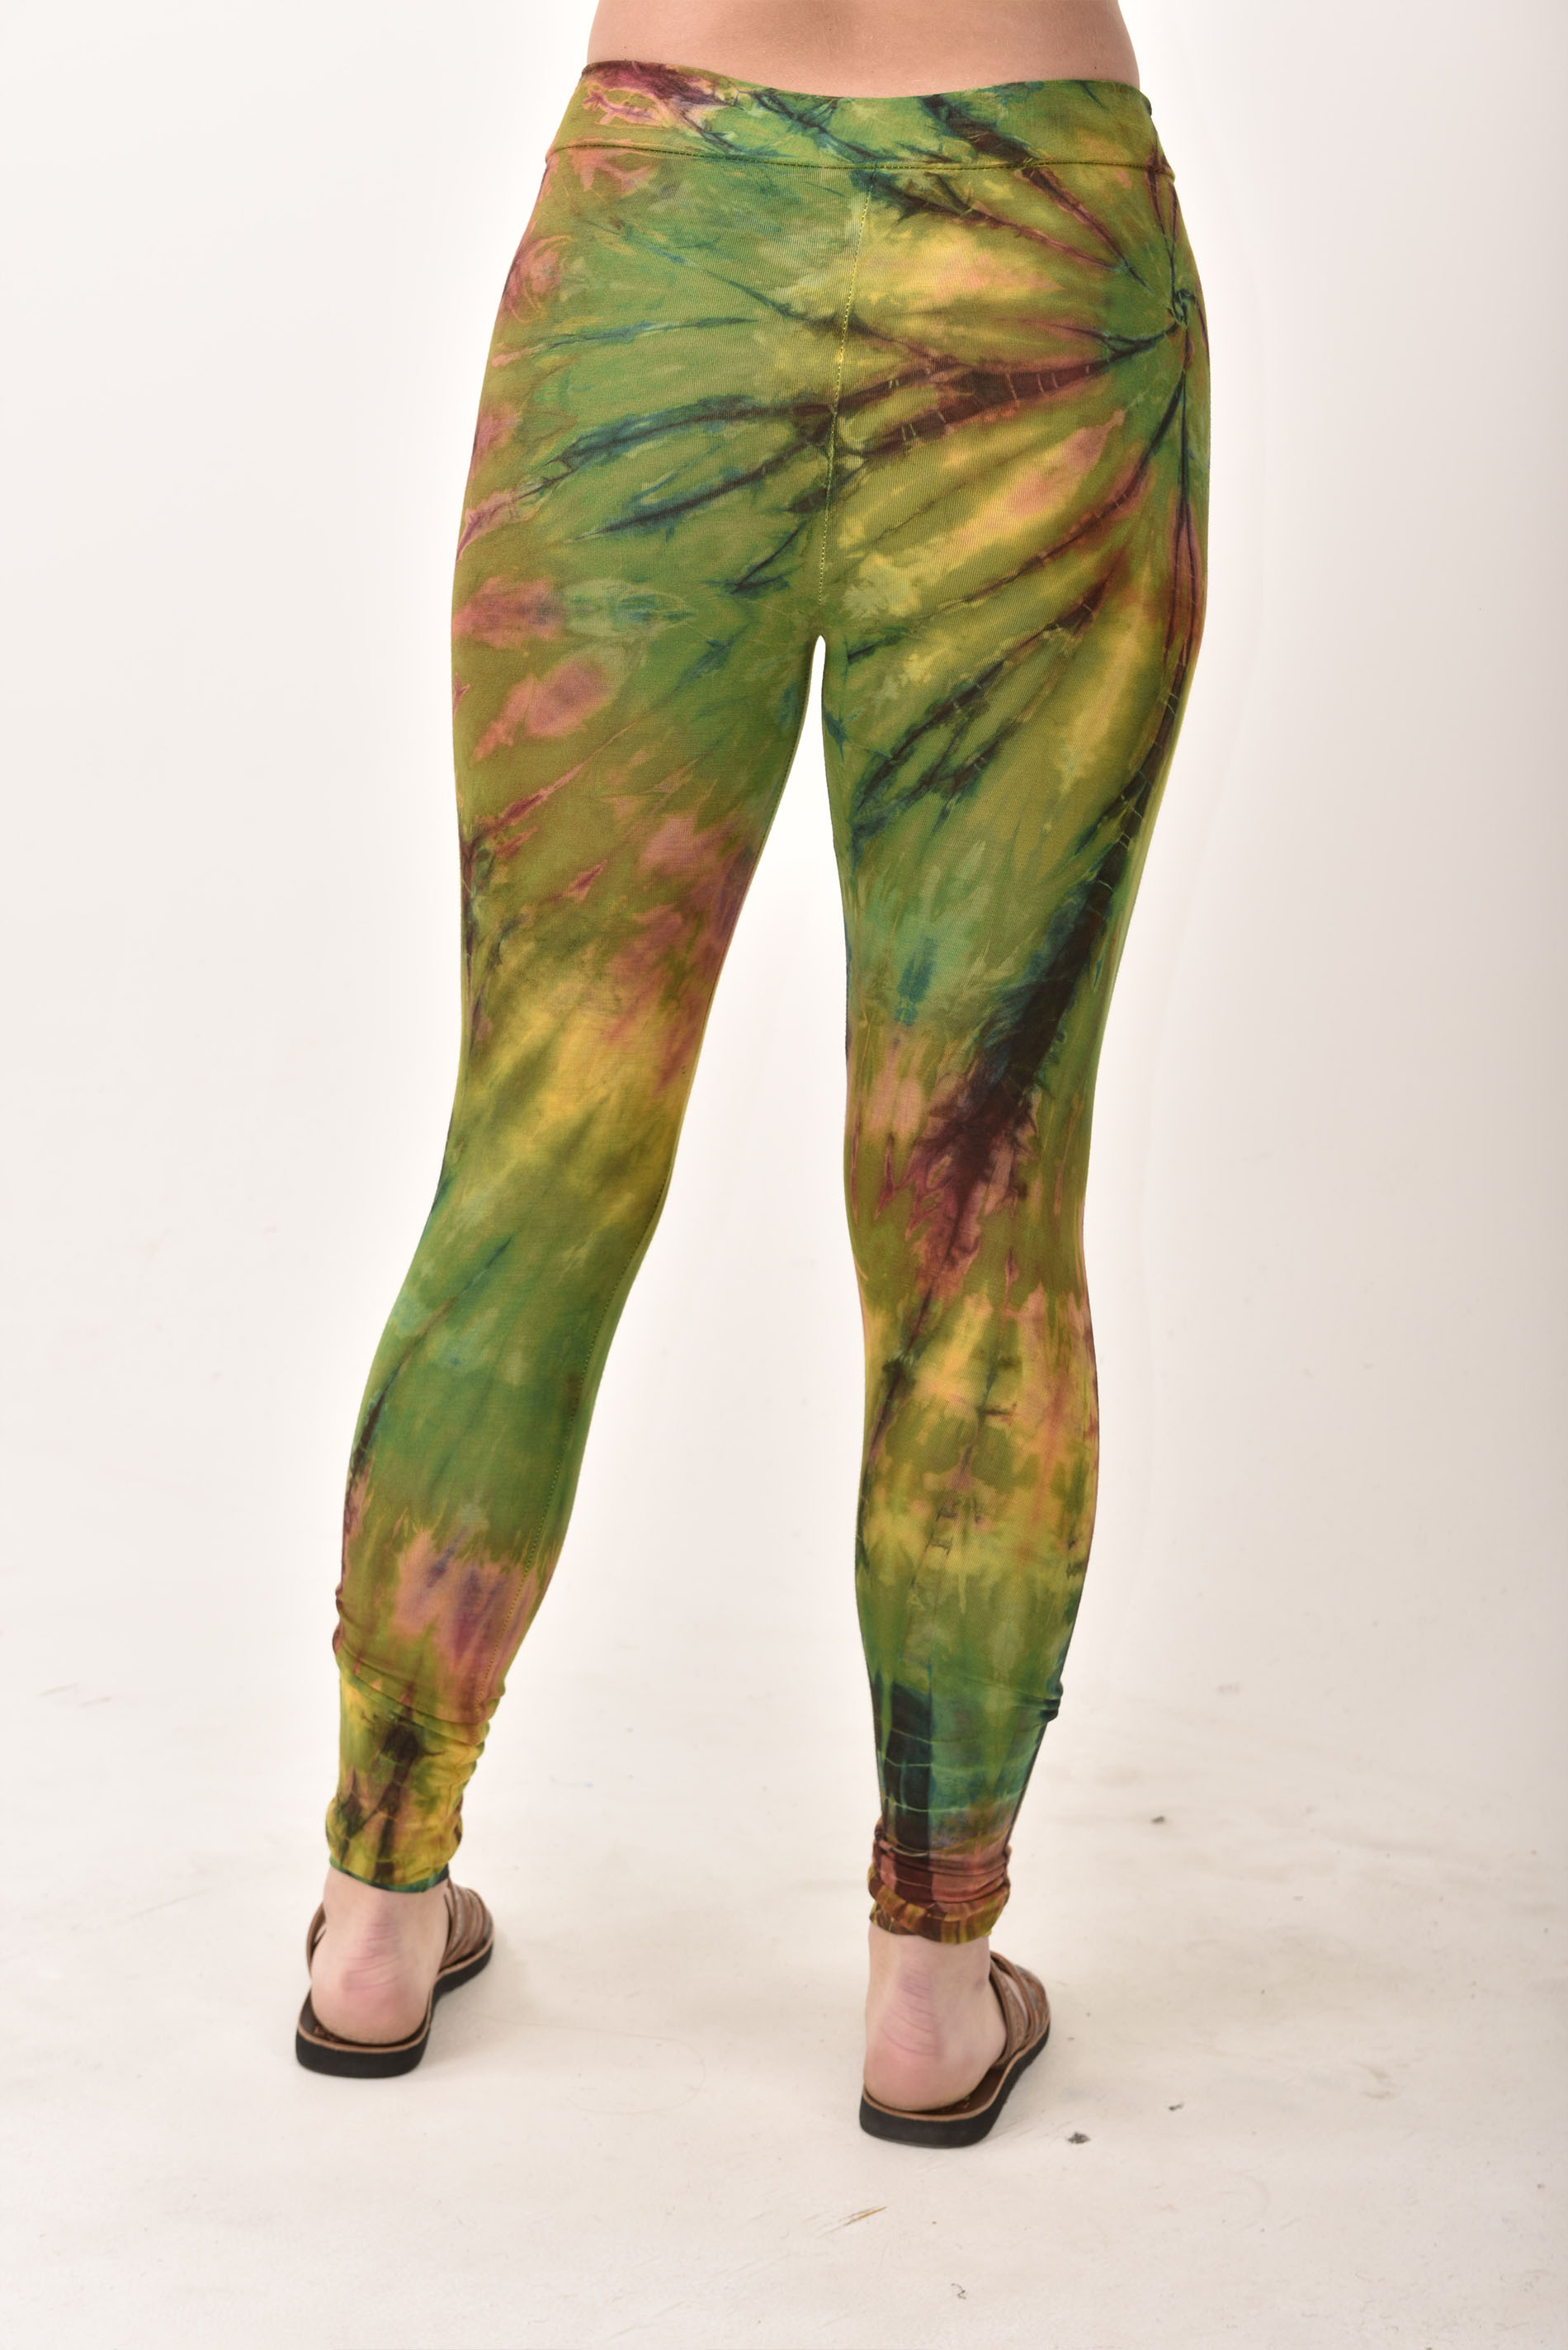 Leggings, Hand Painted Tie Dye Olive Multi - 1923G